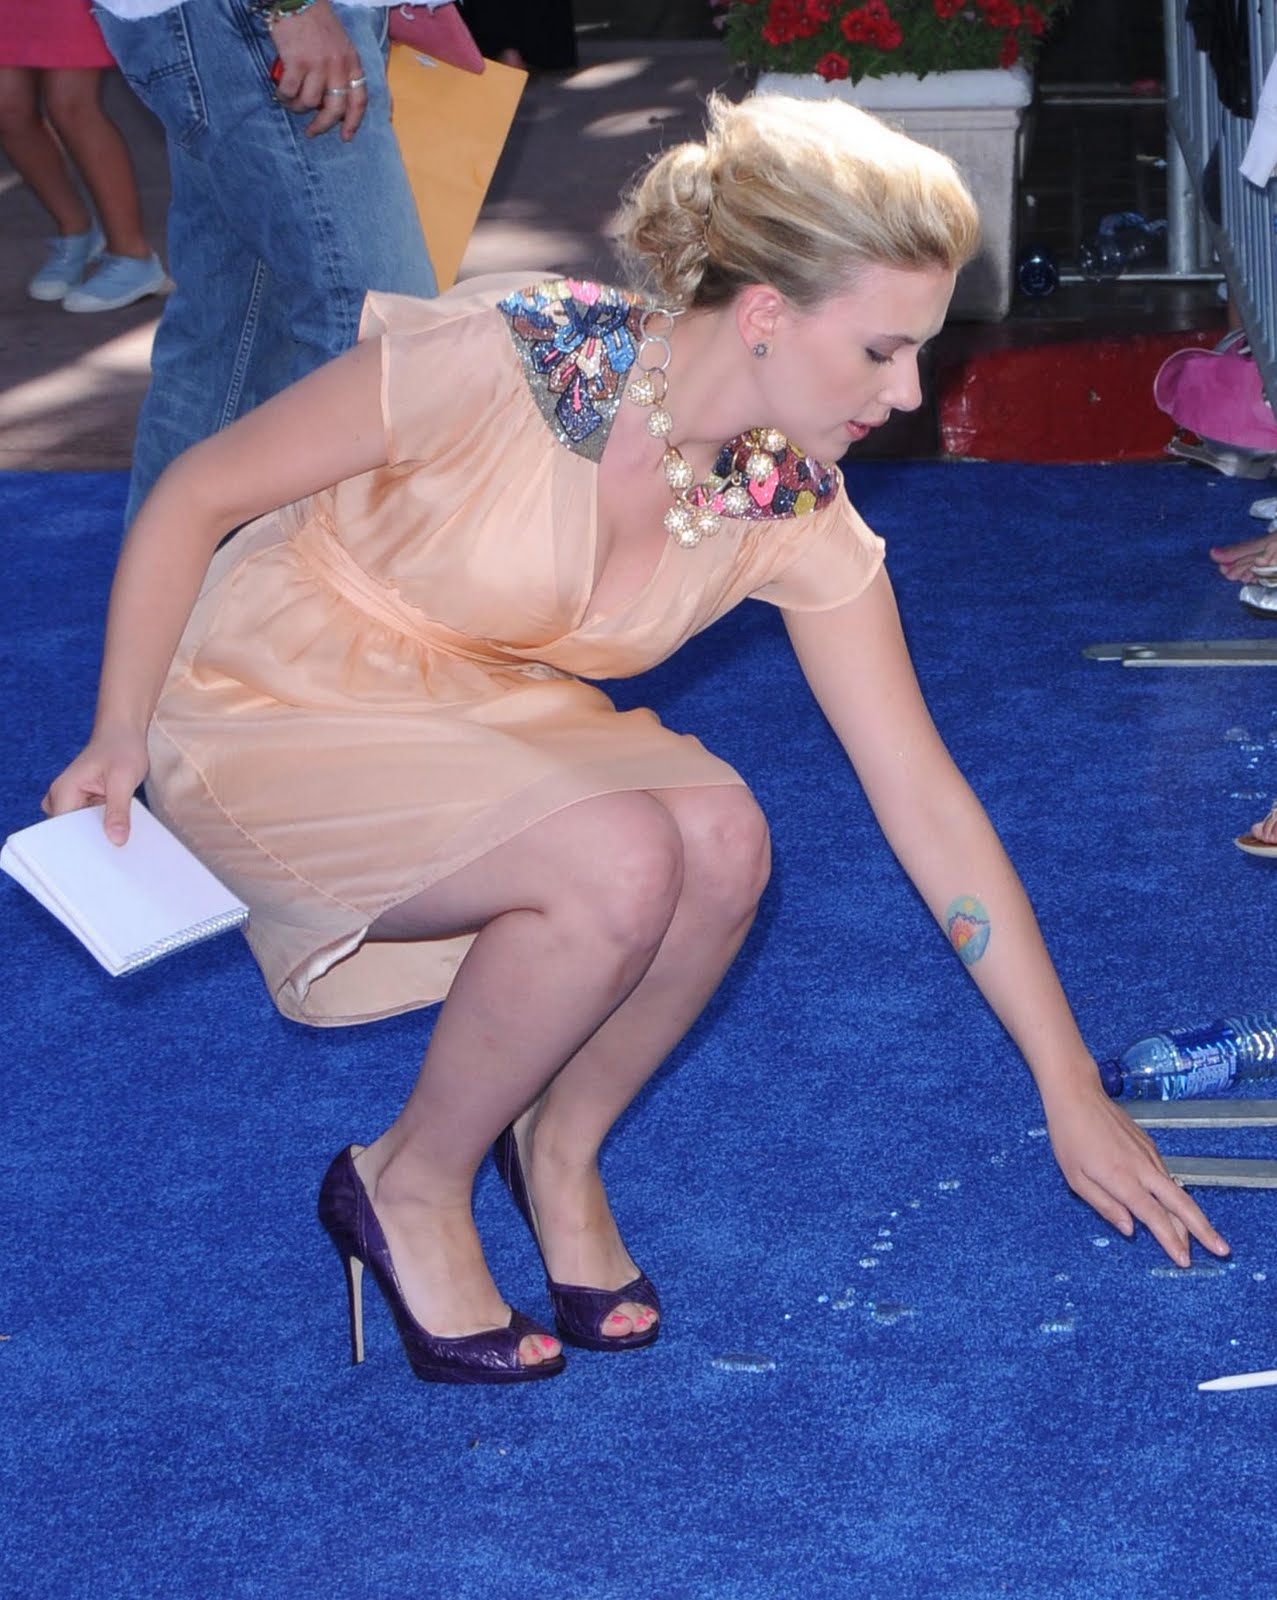 http://3.bp.blogspot.com/_YzoNgr0eLEo/TU5hqb9t_XI/AAAAAAAAHrg/lHm-DdRsmtA/s1600/63078_Scarlett_Johansson_arrives_at_the_2008_Teen_Choice_Awards_9189_122_243lo.jpg